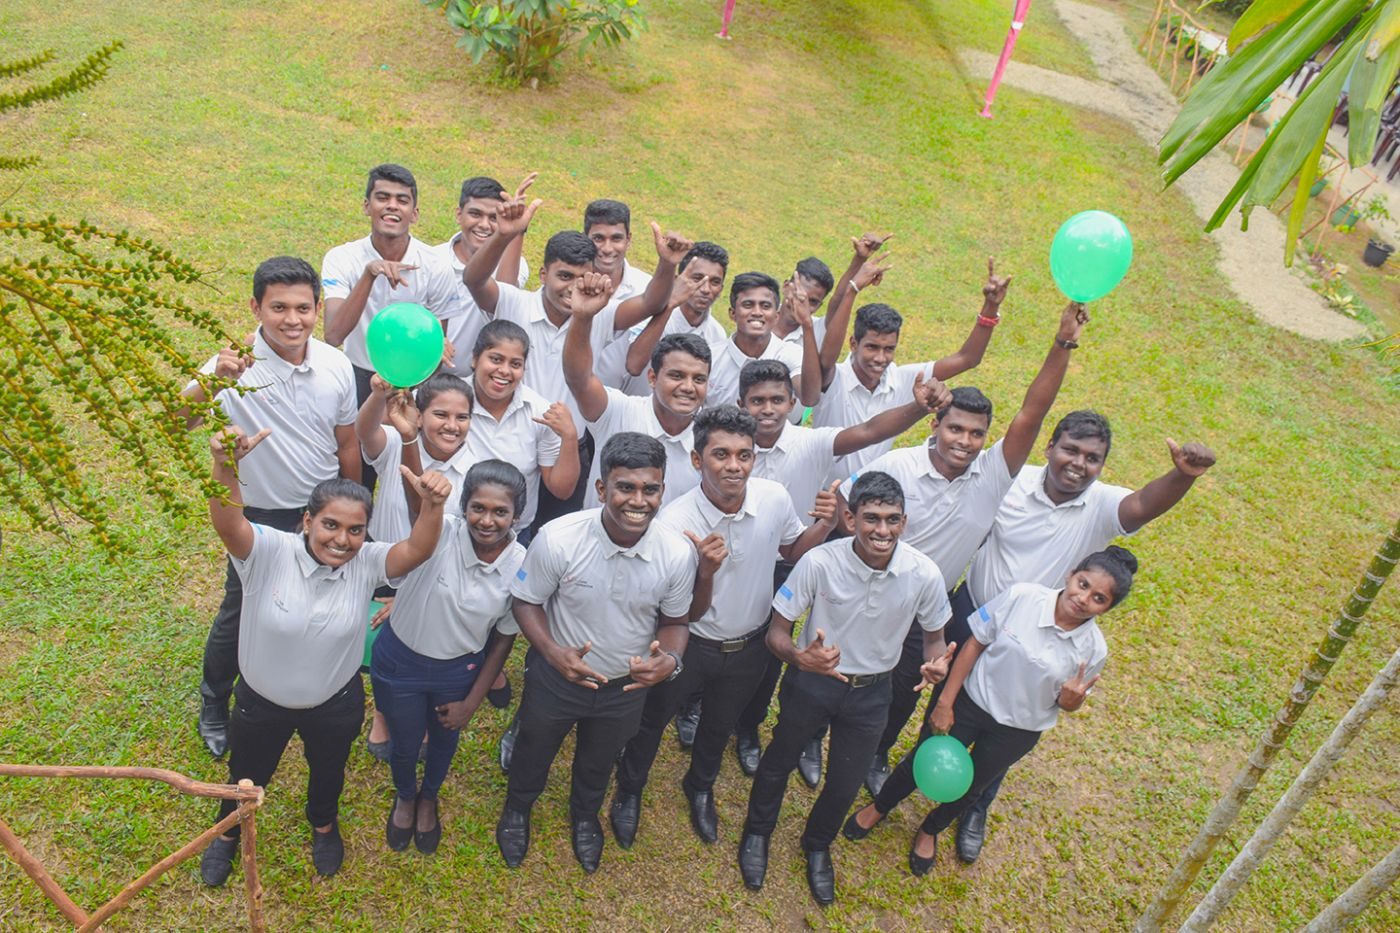 Group of smiling students from our youth employment progamme in Sri Lanka, in partnership with TUI Care Foundation